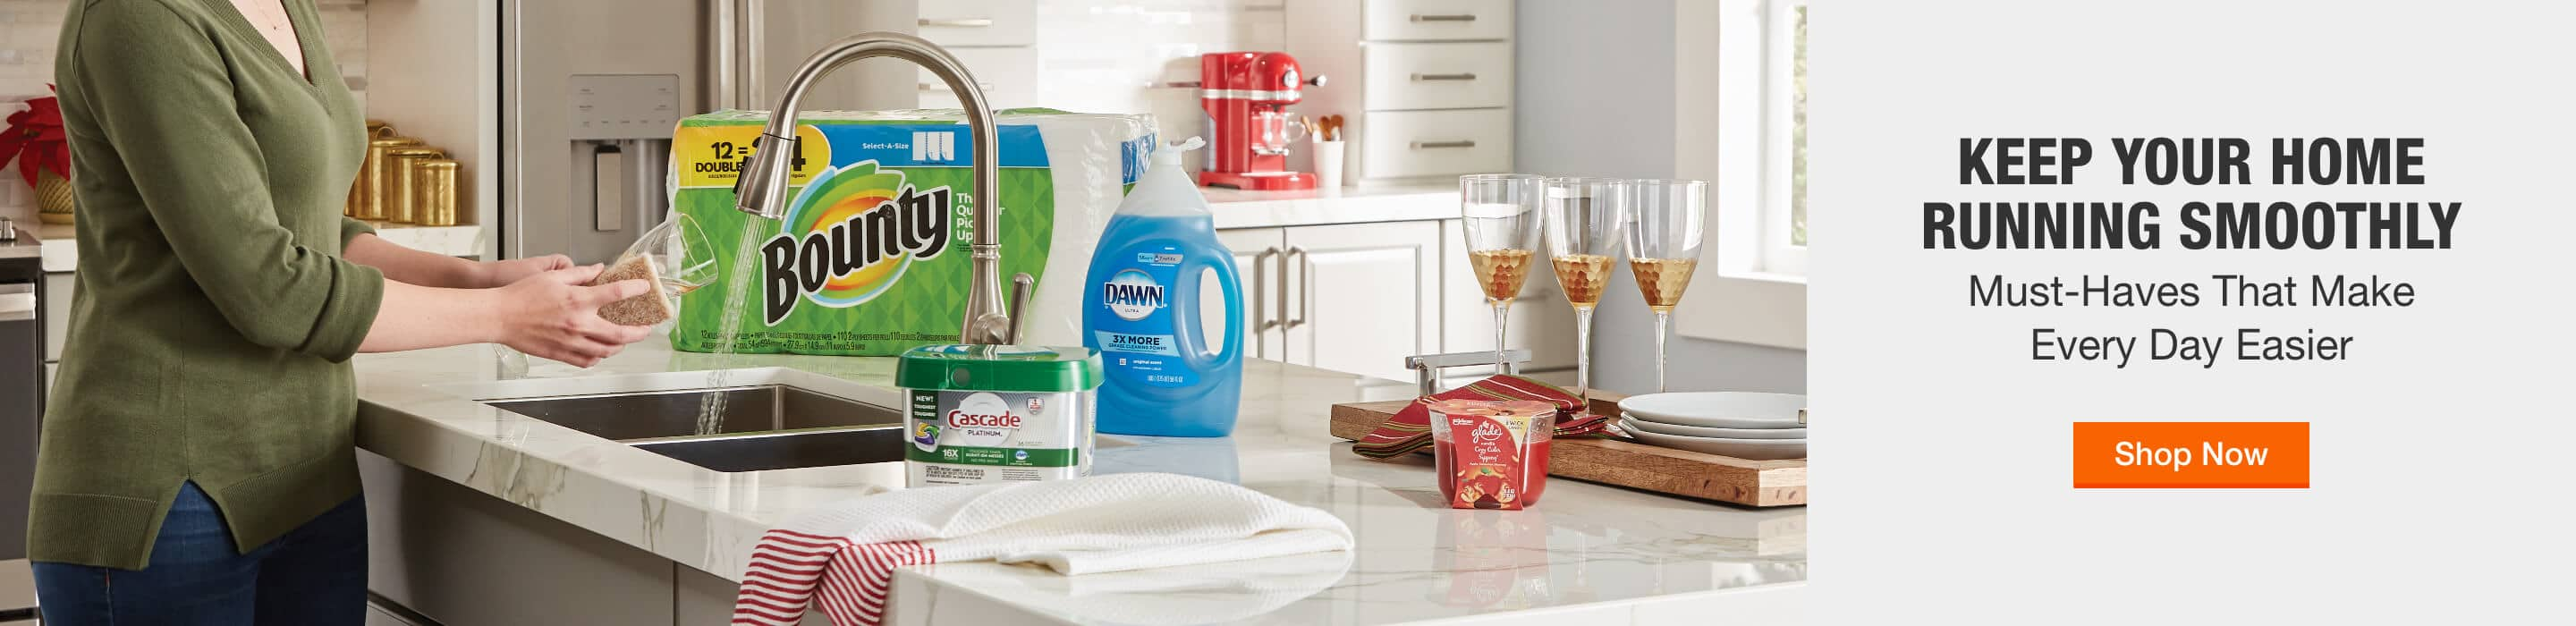 KEEP YOUR HOME RUNNING SMOOTHLY Must-Haves That Make Every Day Easier Shop Now